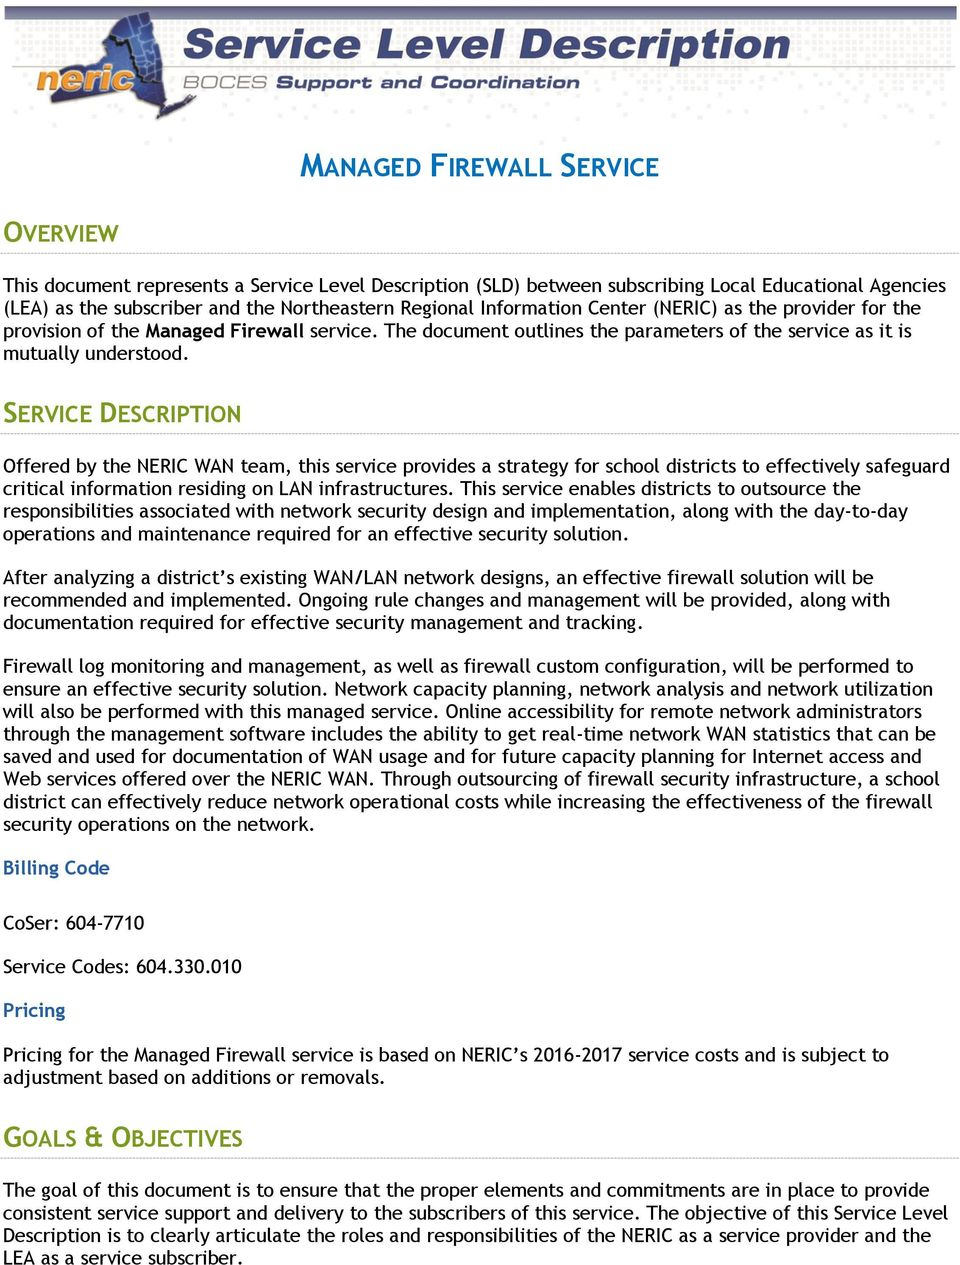 SERVICE DESCRIPTION Offered by the NERIC WAN team, this service provides a strategy for school districts to effectively safeguard critical information residing on LAN infrastructures.